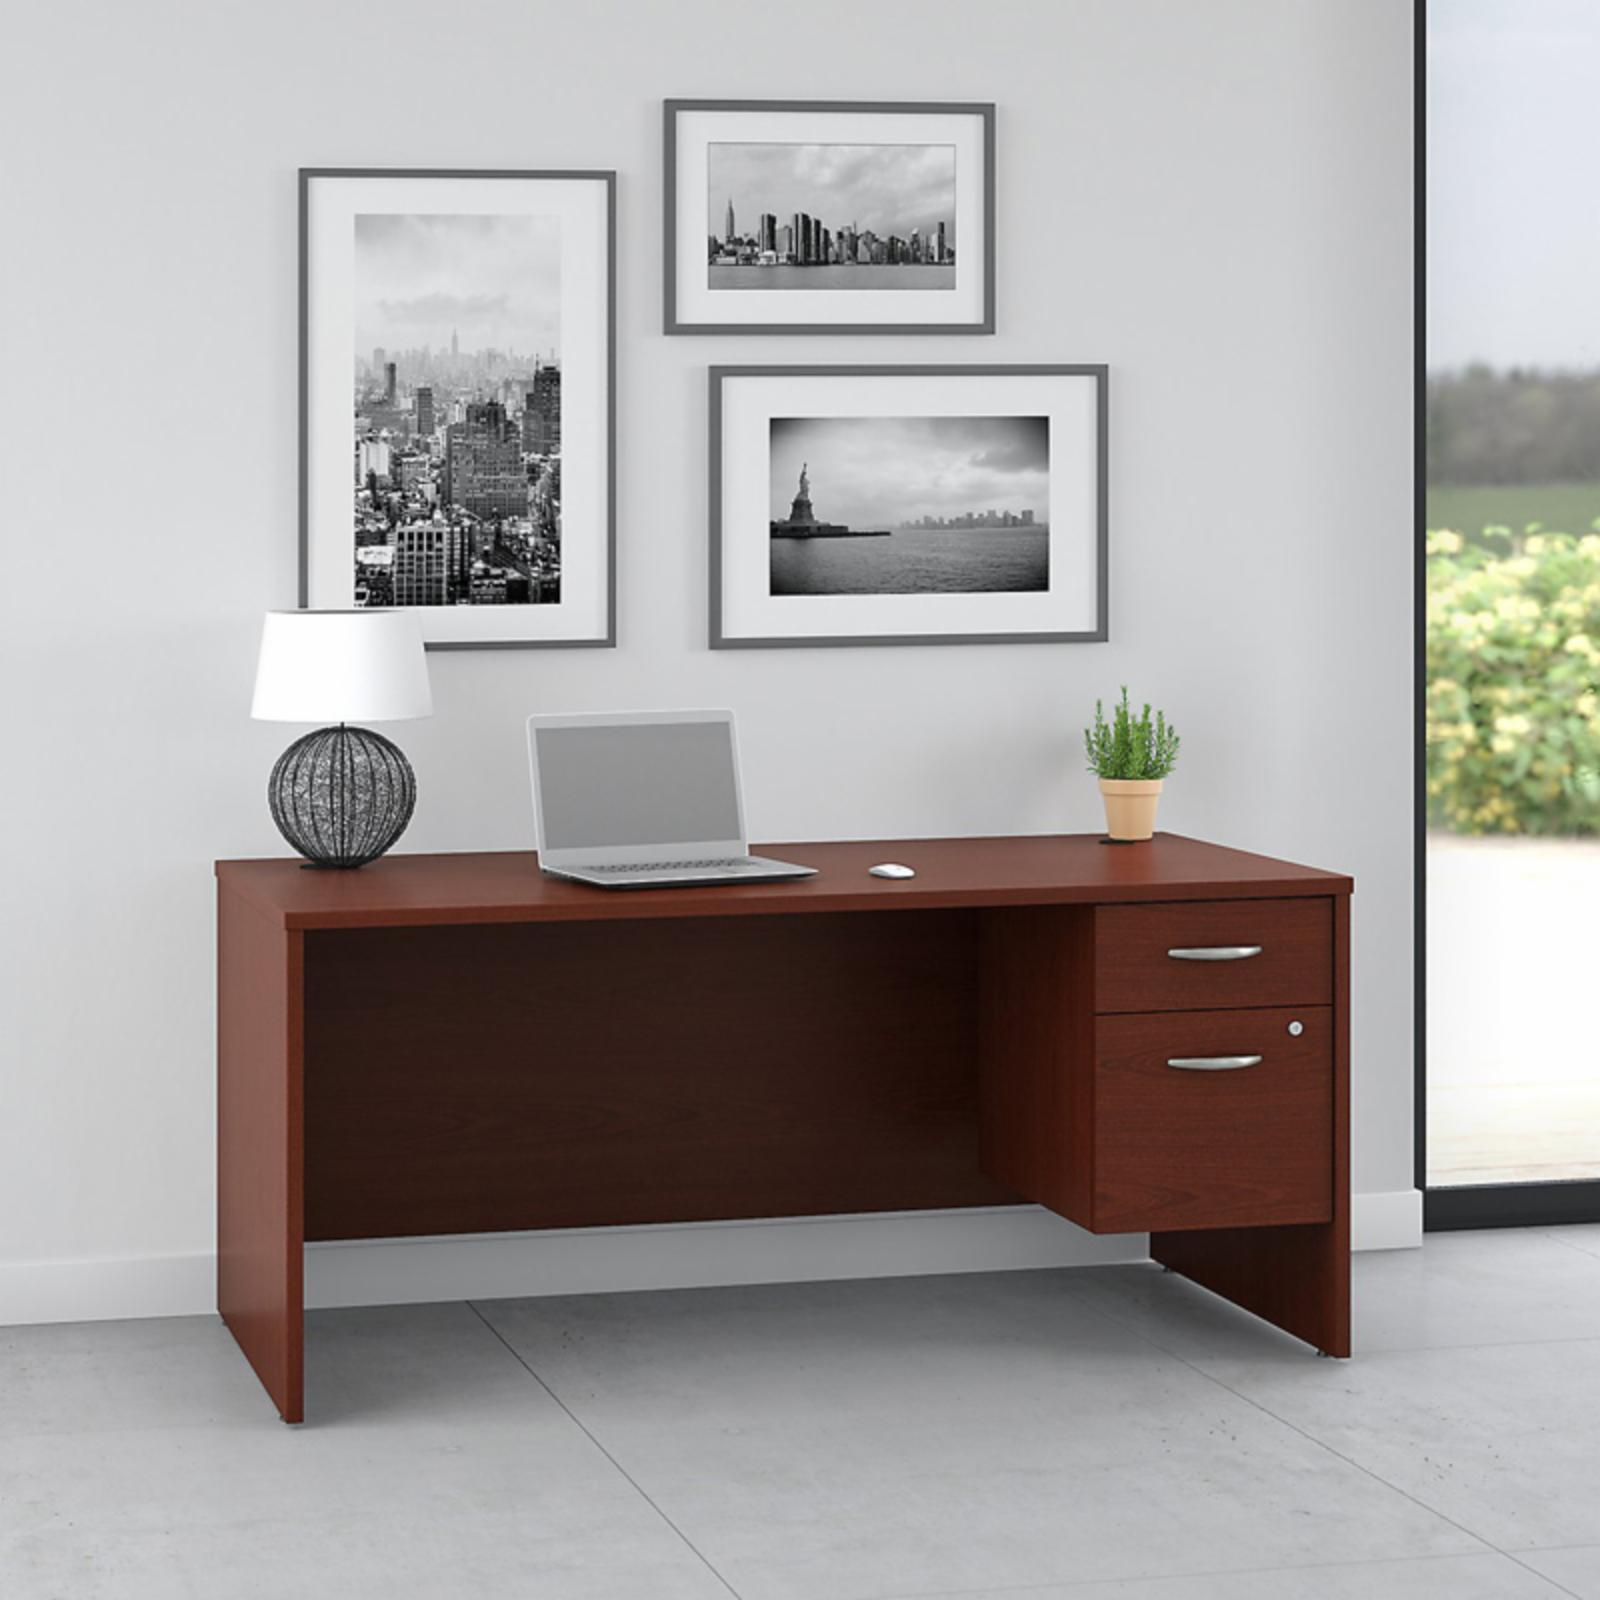 Office Connect Pro Office Computer Desk with Pedestal - PRF001MA